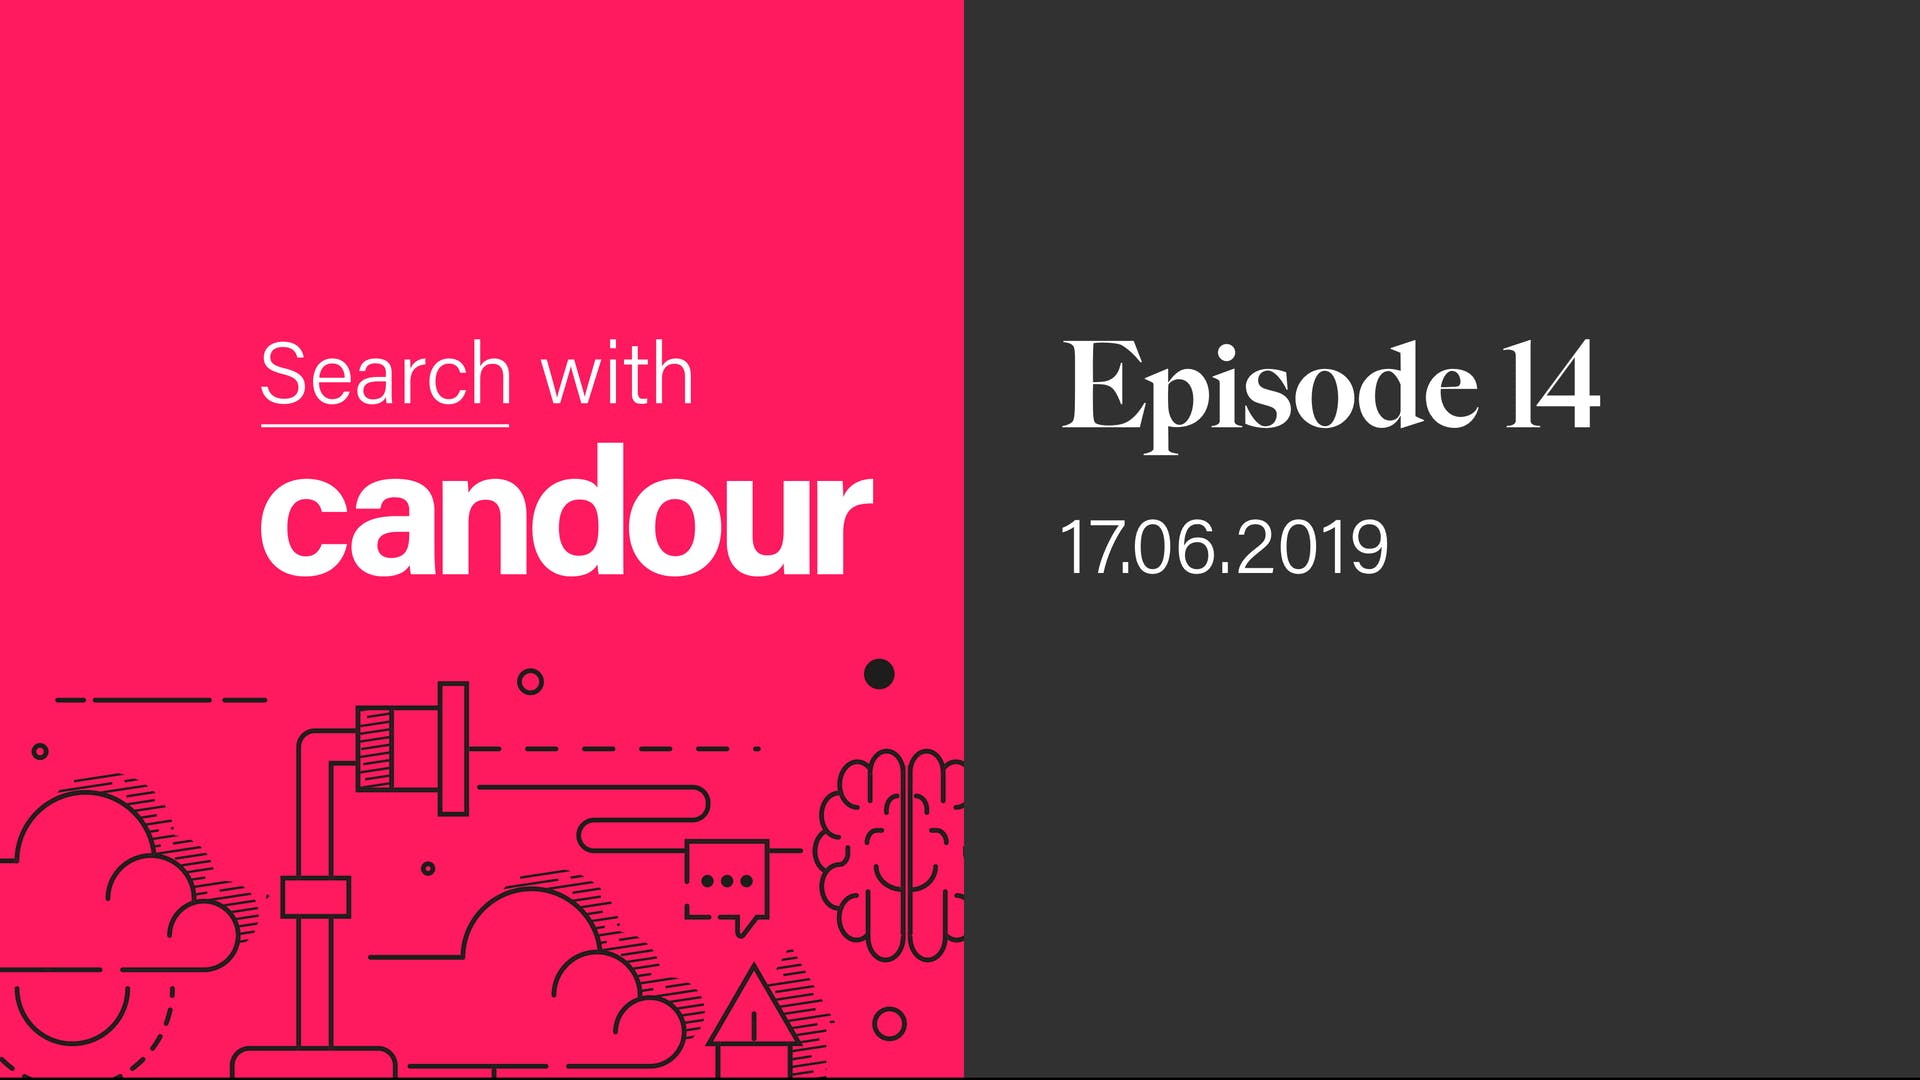 Search with Candour podcast - Episode 14